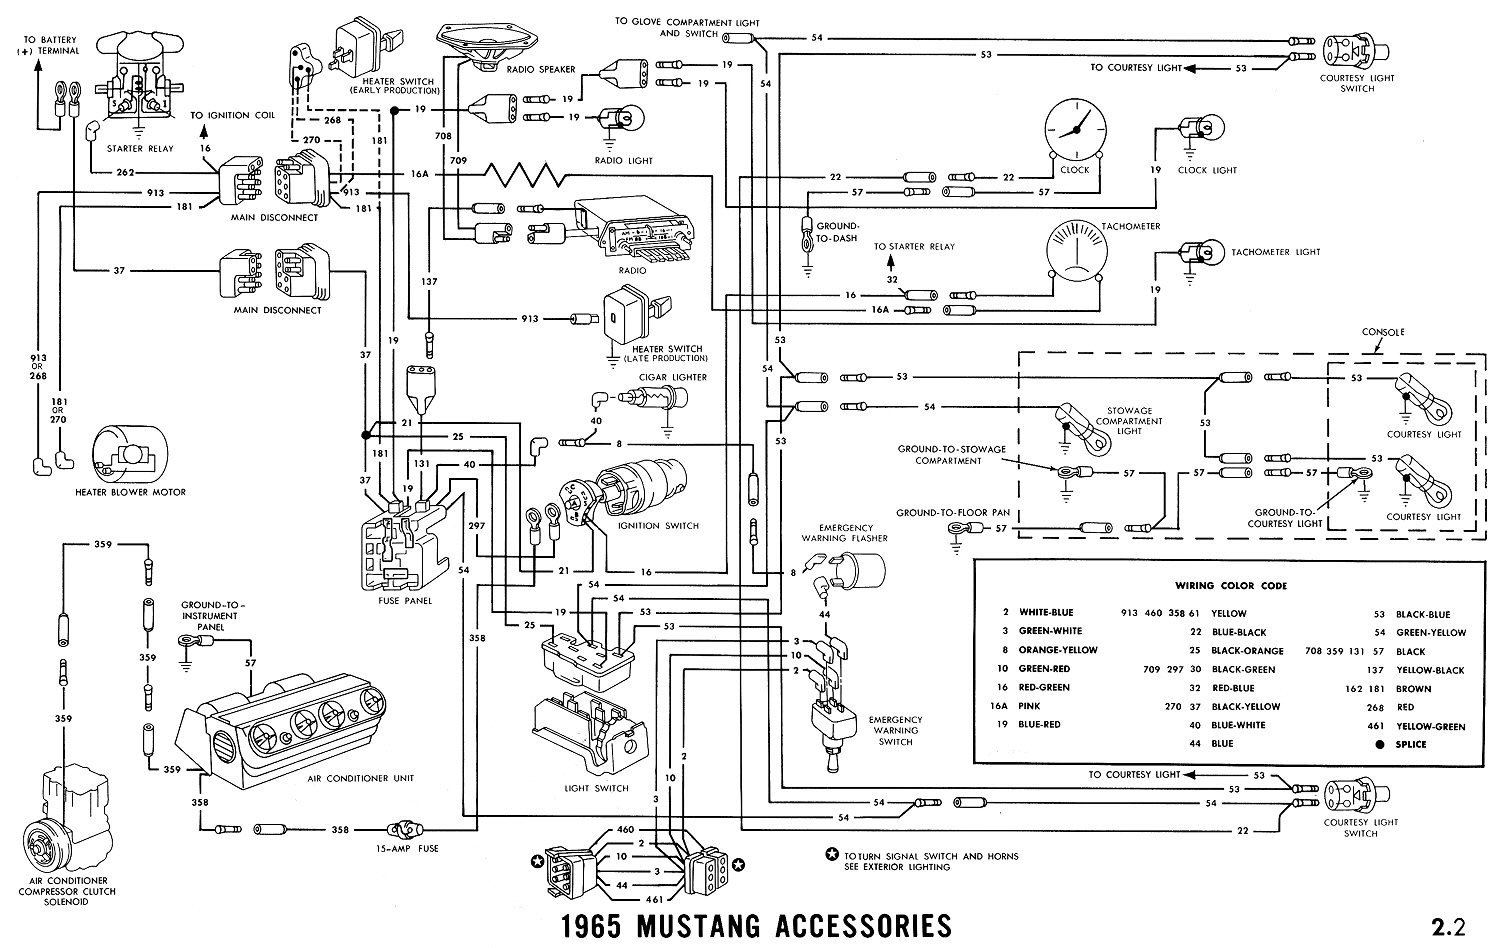 1965i 1965 mustang wiring diagram 1965 lincoln wiring diagram \u2022 wiring 2005 ford mustang instrument cluster wiring diagram at crackthecode.co